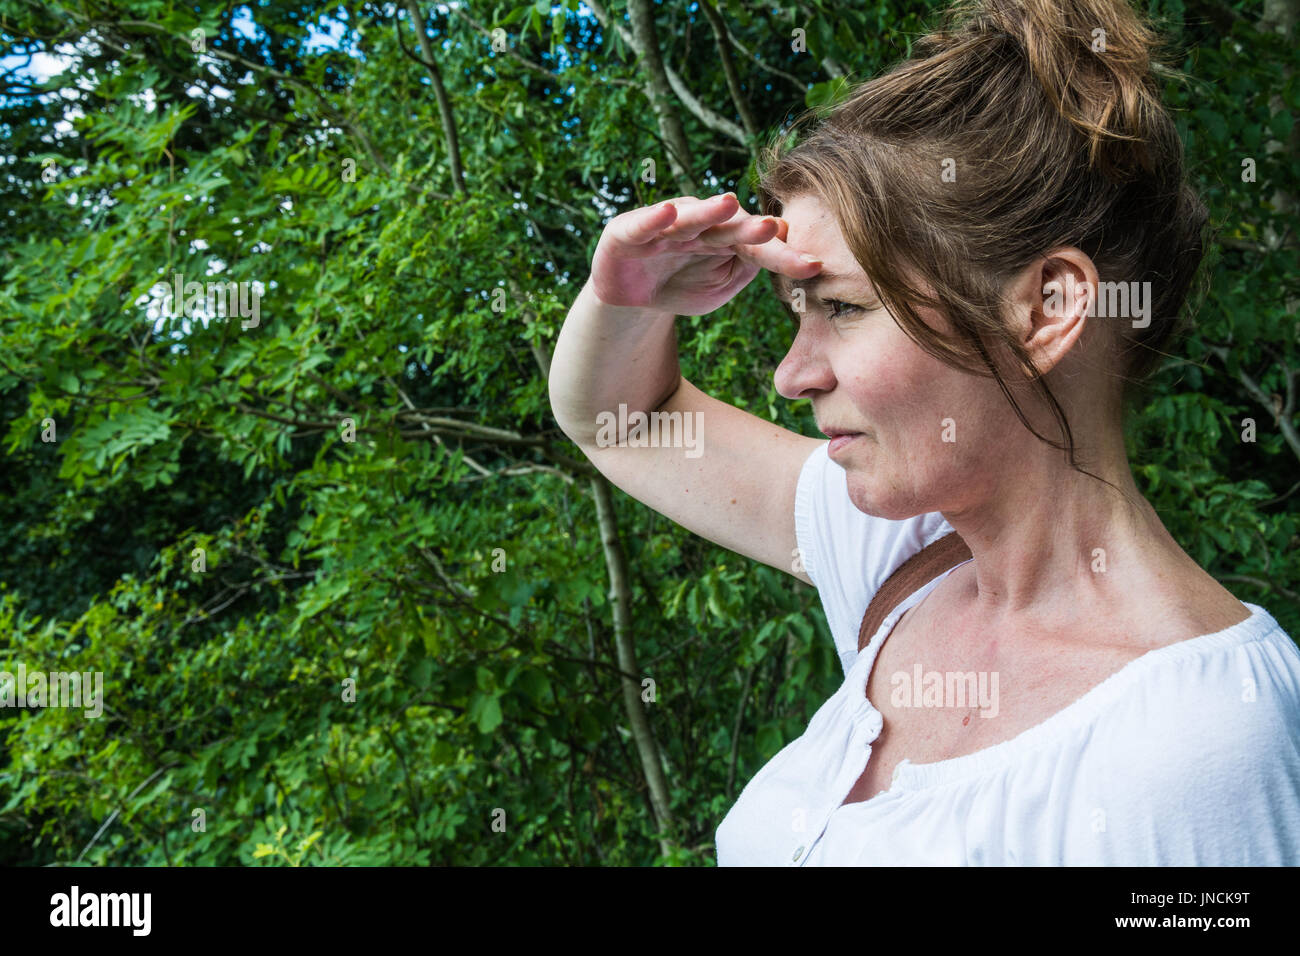 A woman shading her eyes to get a clearer view. A looking concept, as in looking ahead, to the future, looking out for obstacles and dangers. UK - Stock Image